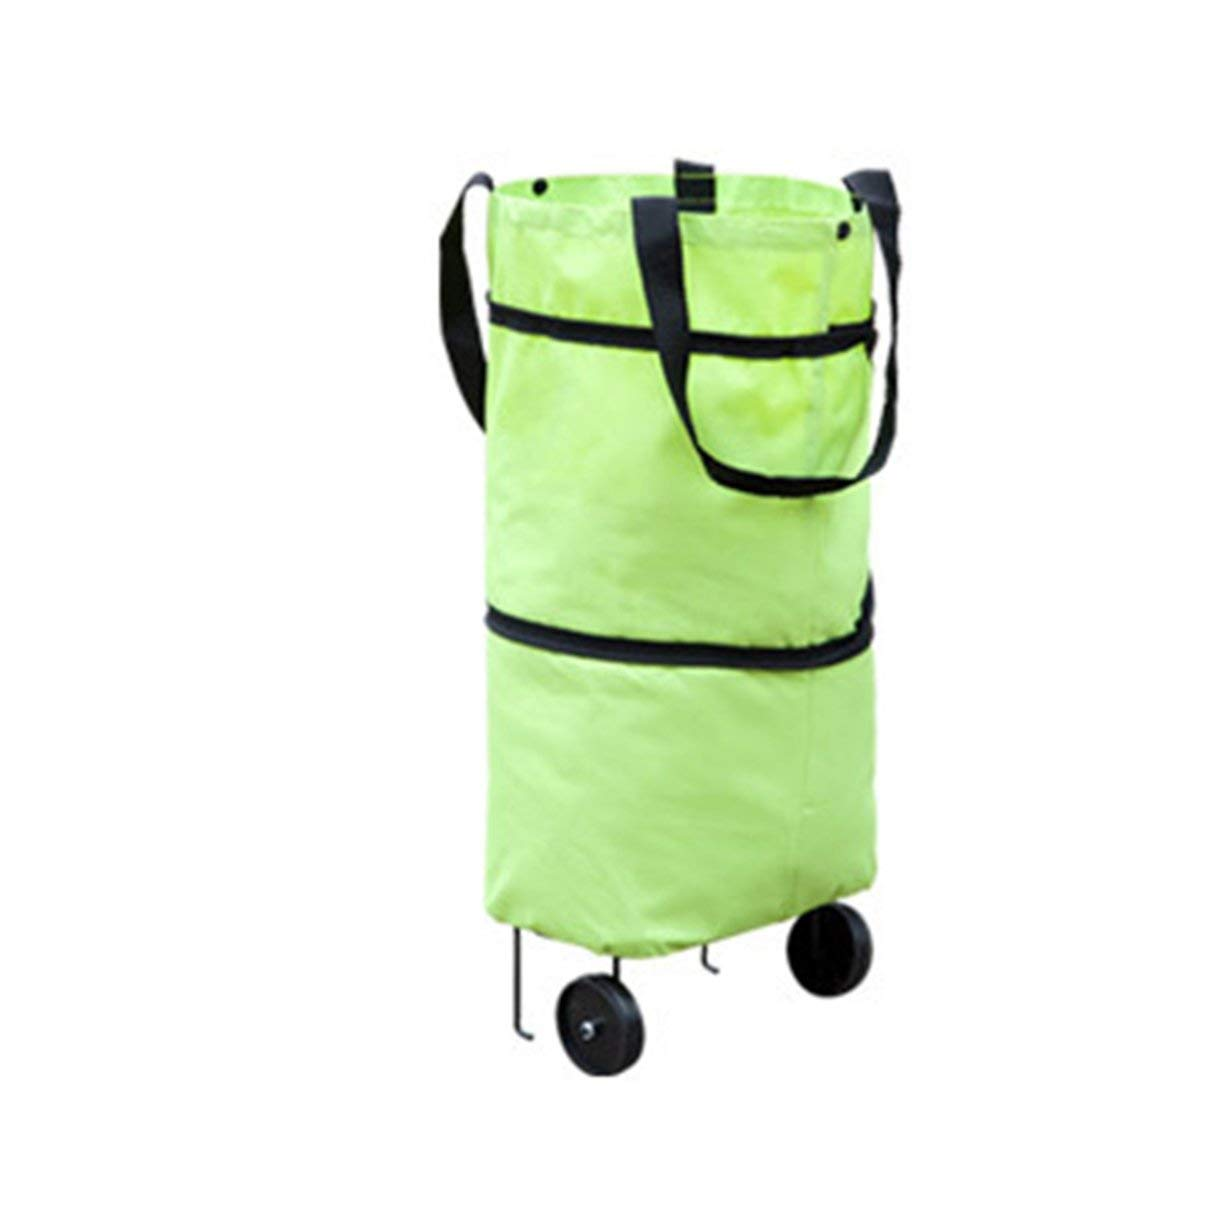 Shopping Trolley Wheel Bag,Fashionable Design Large Capacity Waterproof Oxford Cloth Foldable Shopping Trolley Wheel Bag Traval Cart Luggage Bag